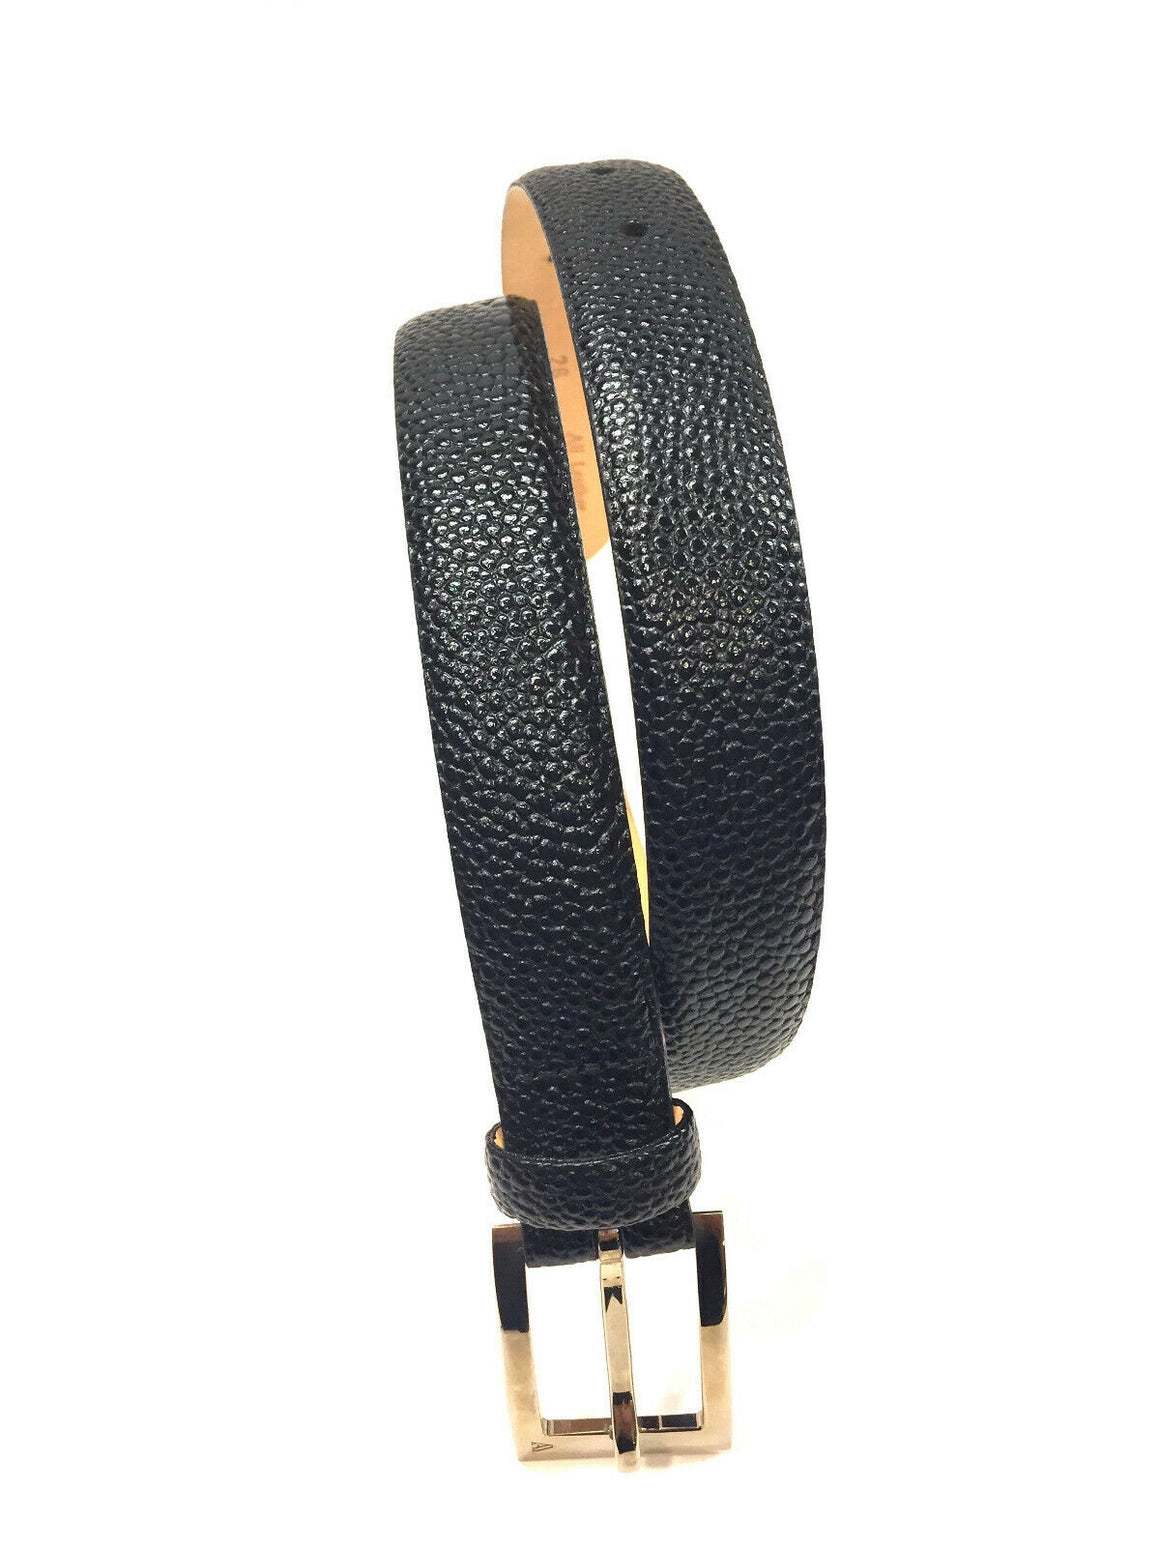 AQUASCUTUM Black Caviar Leather Gold Buckle Waist Belt Size: 26 / Small